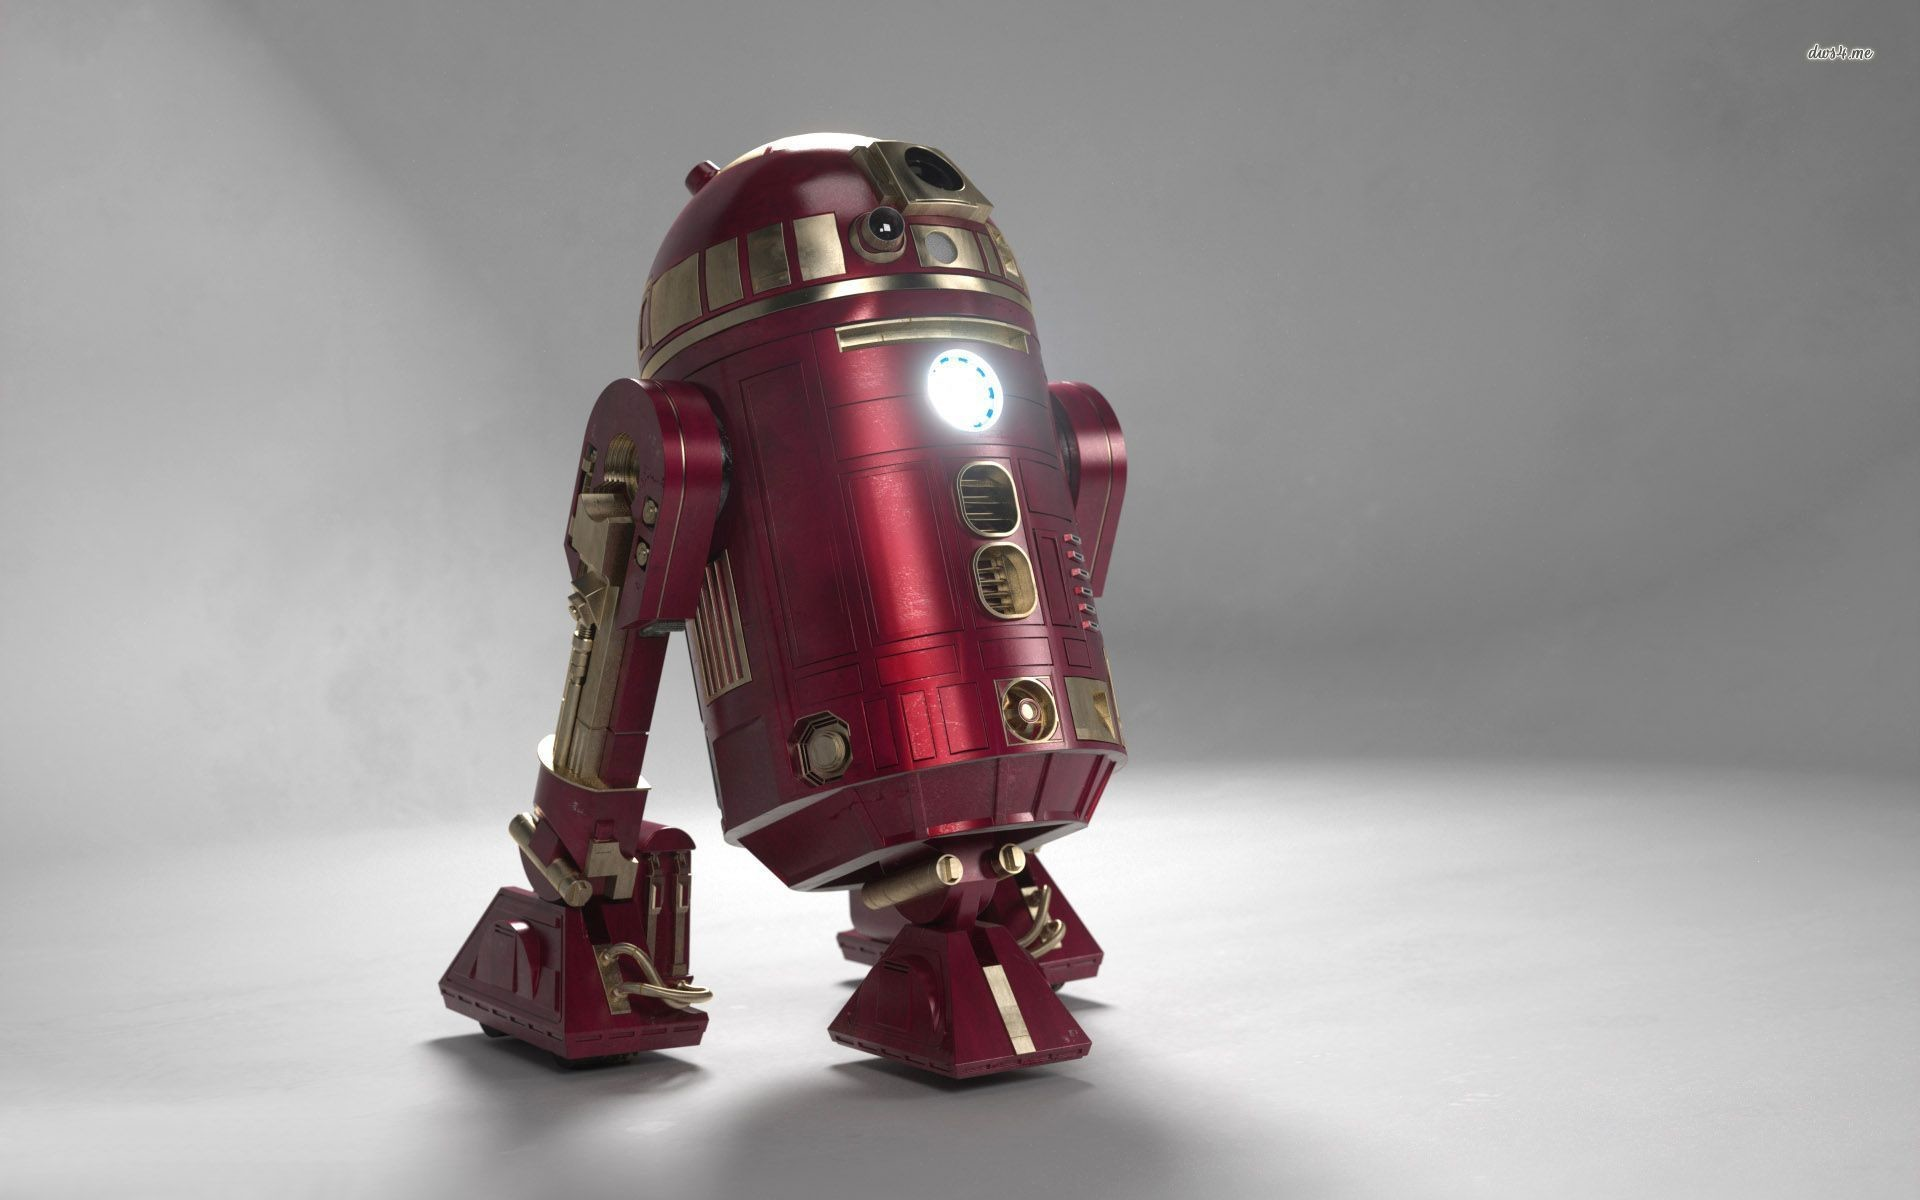 R2d2 In Iron Man Colors Images HD Wallpaper Movie #93930 Wallpaper